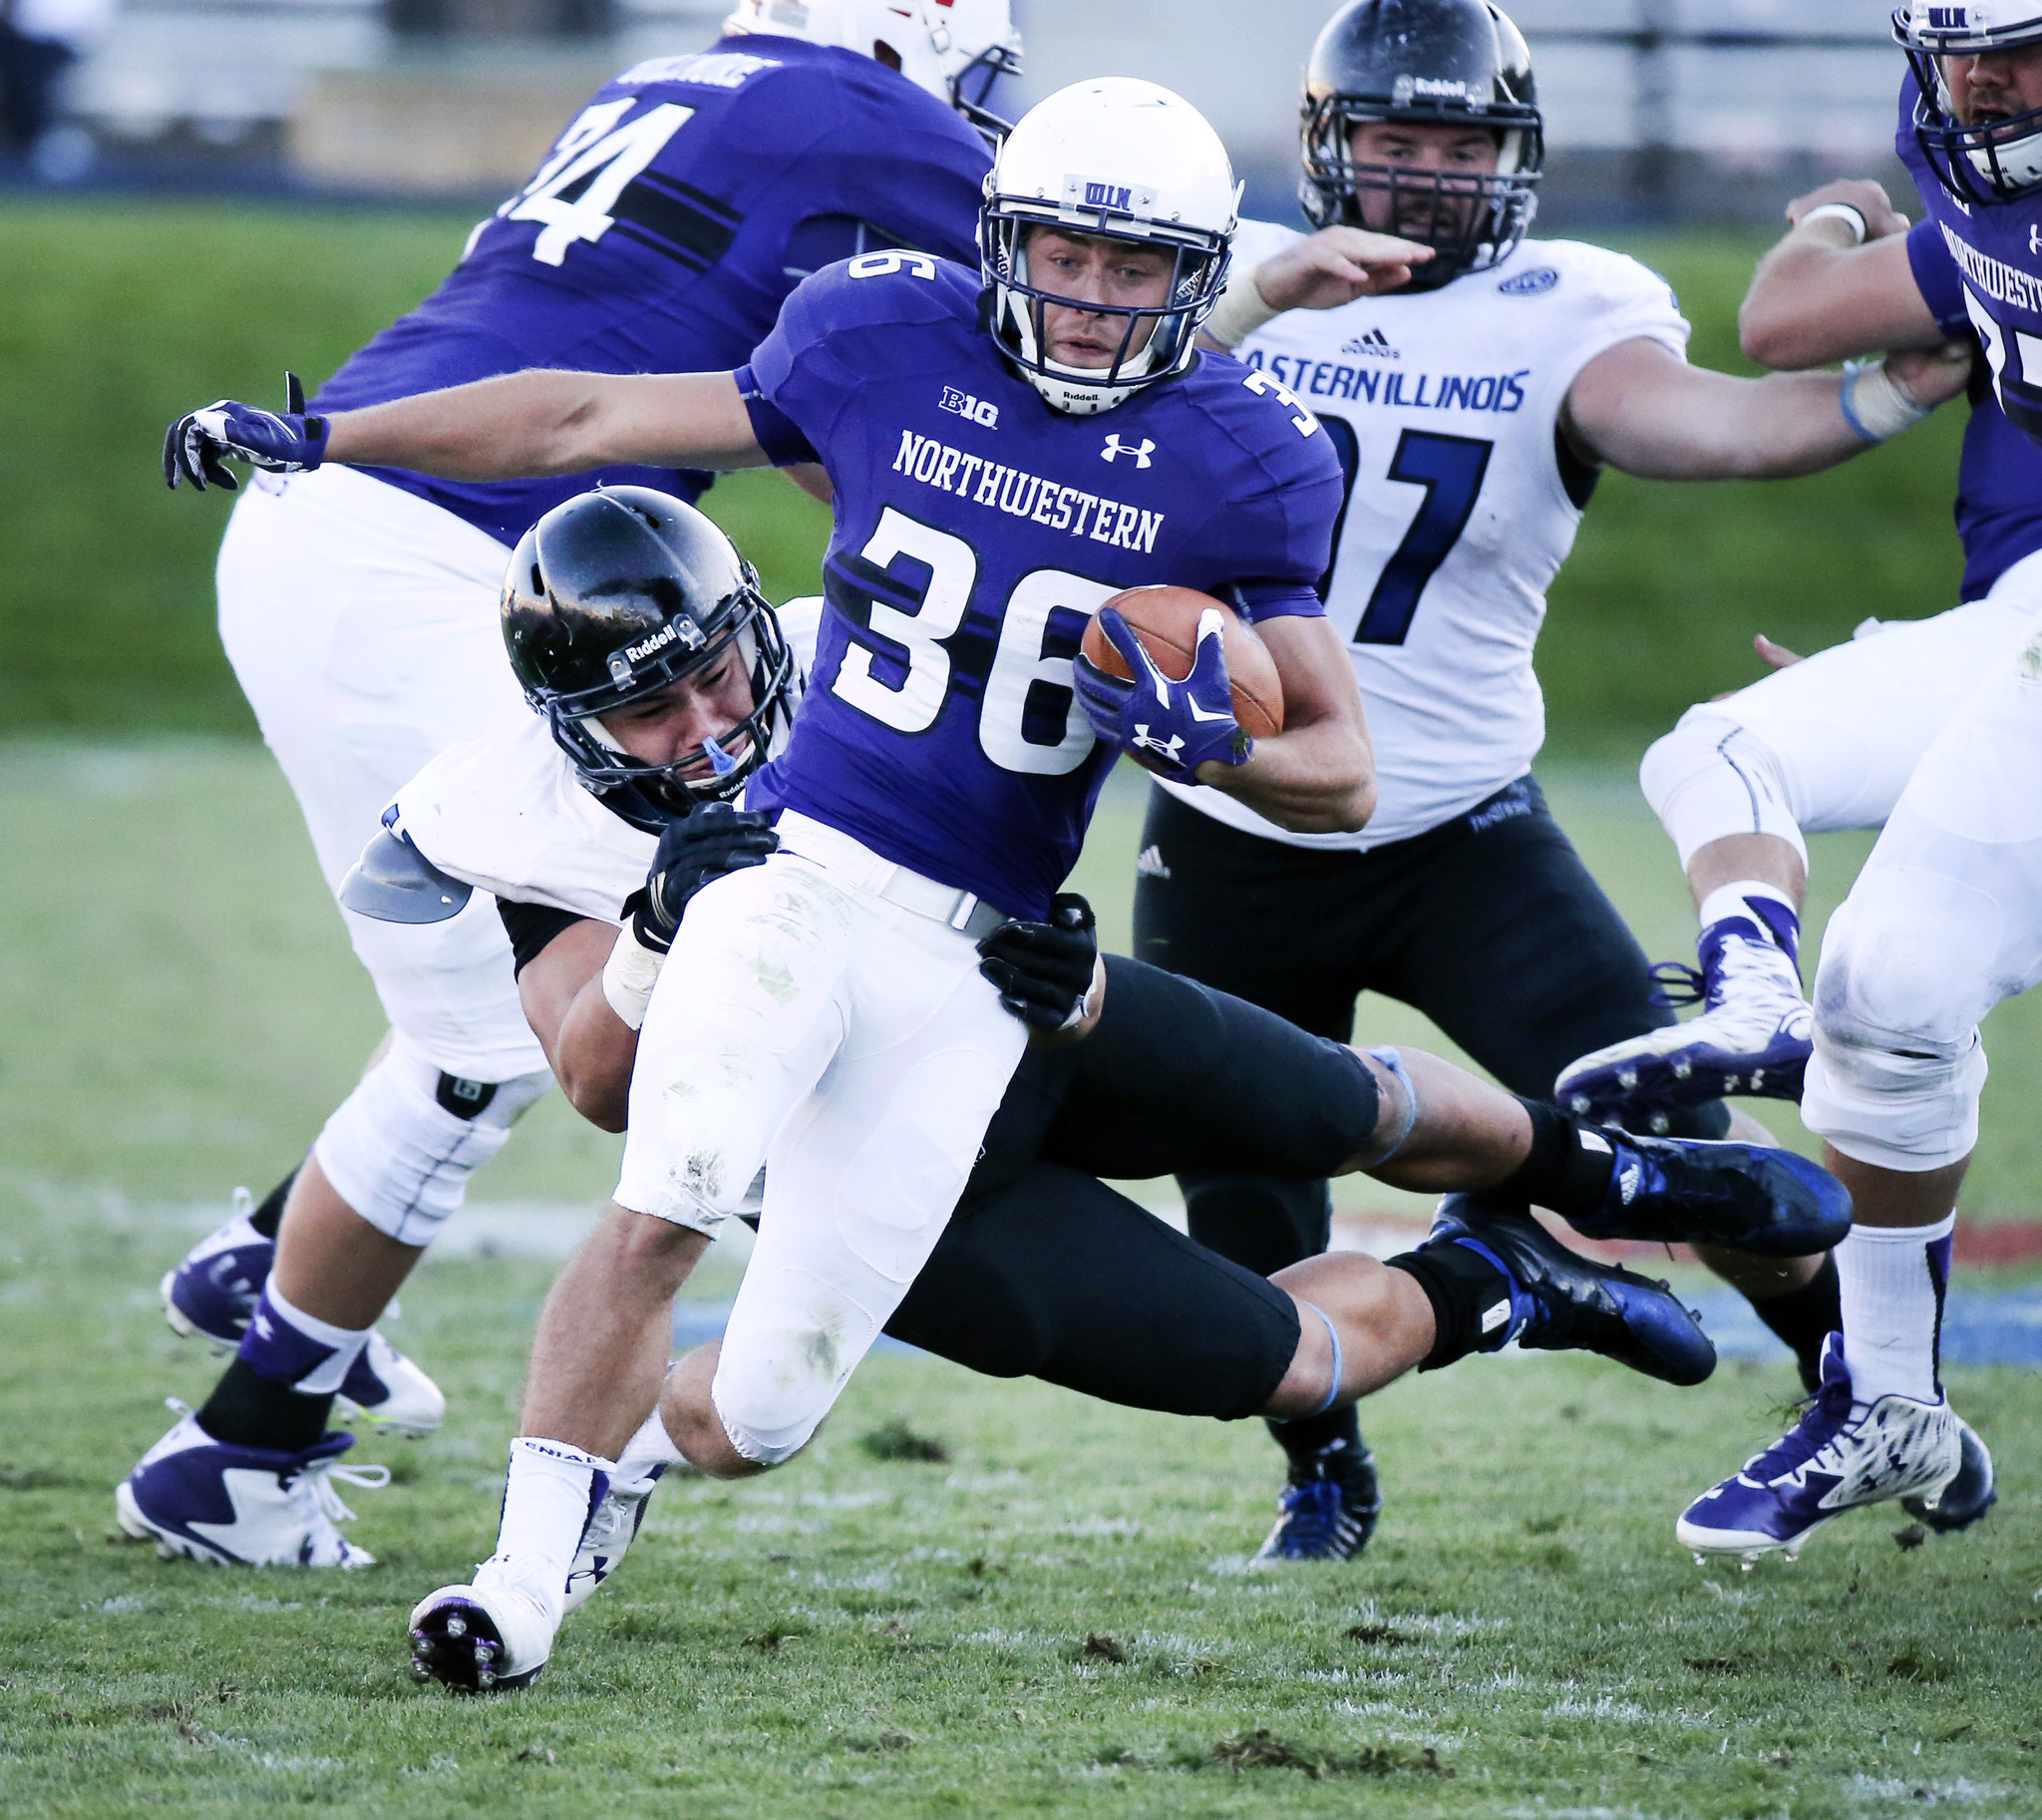 Northwestern Makes Short Work Of Eastern Illinois In 41 0 Romp